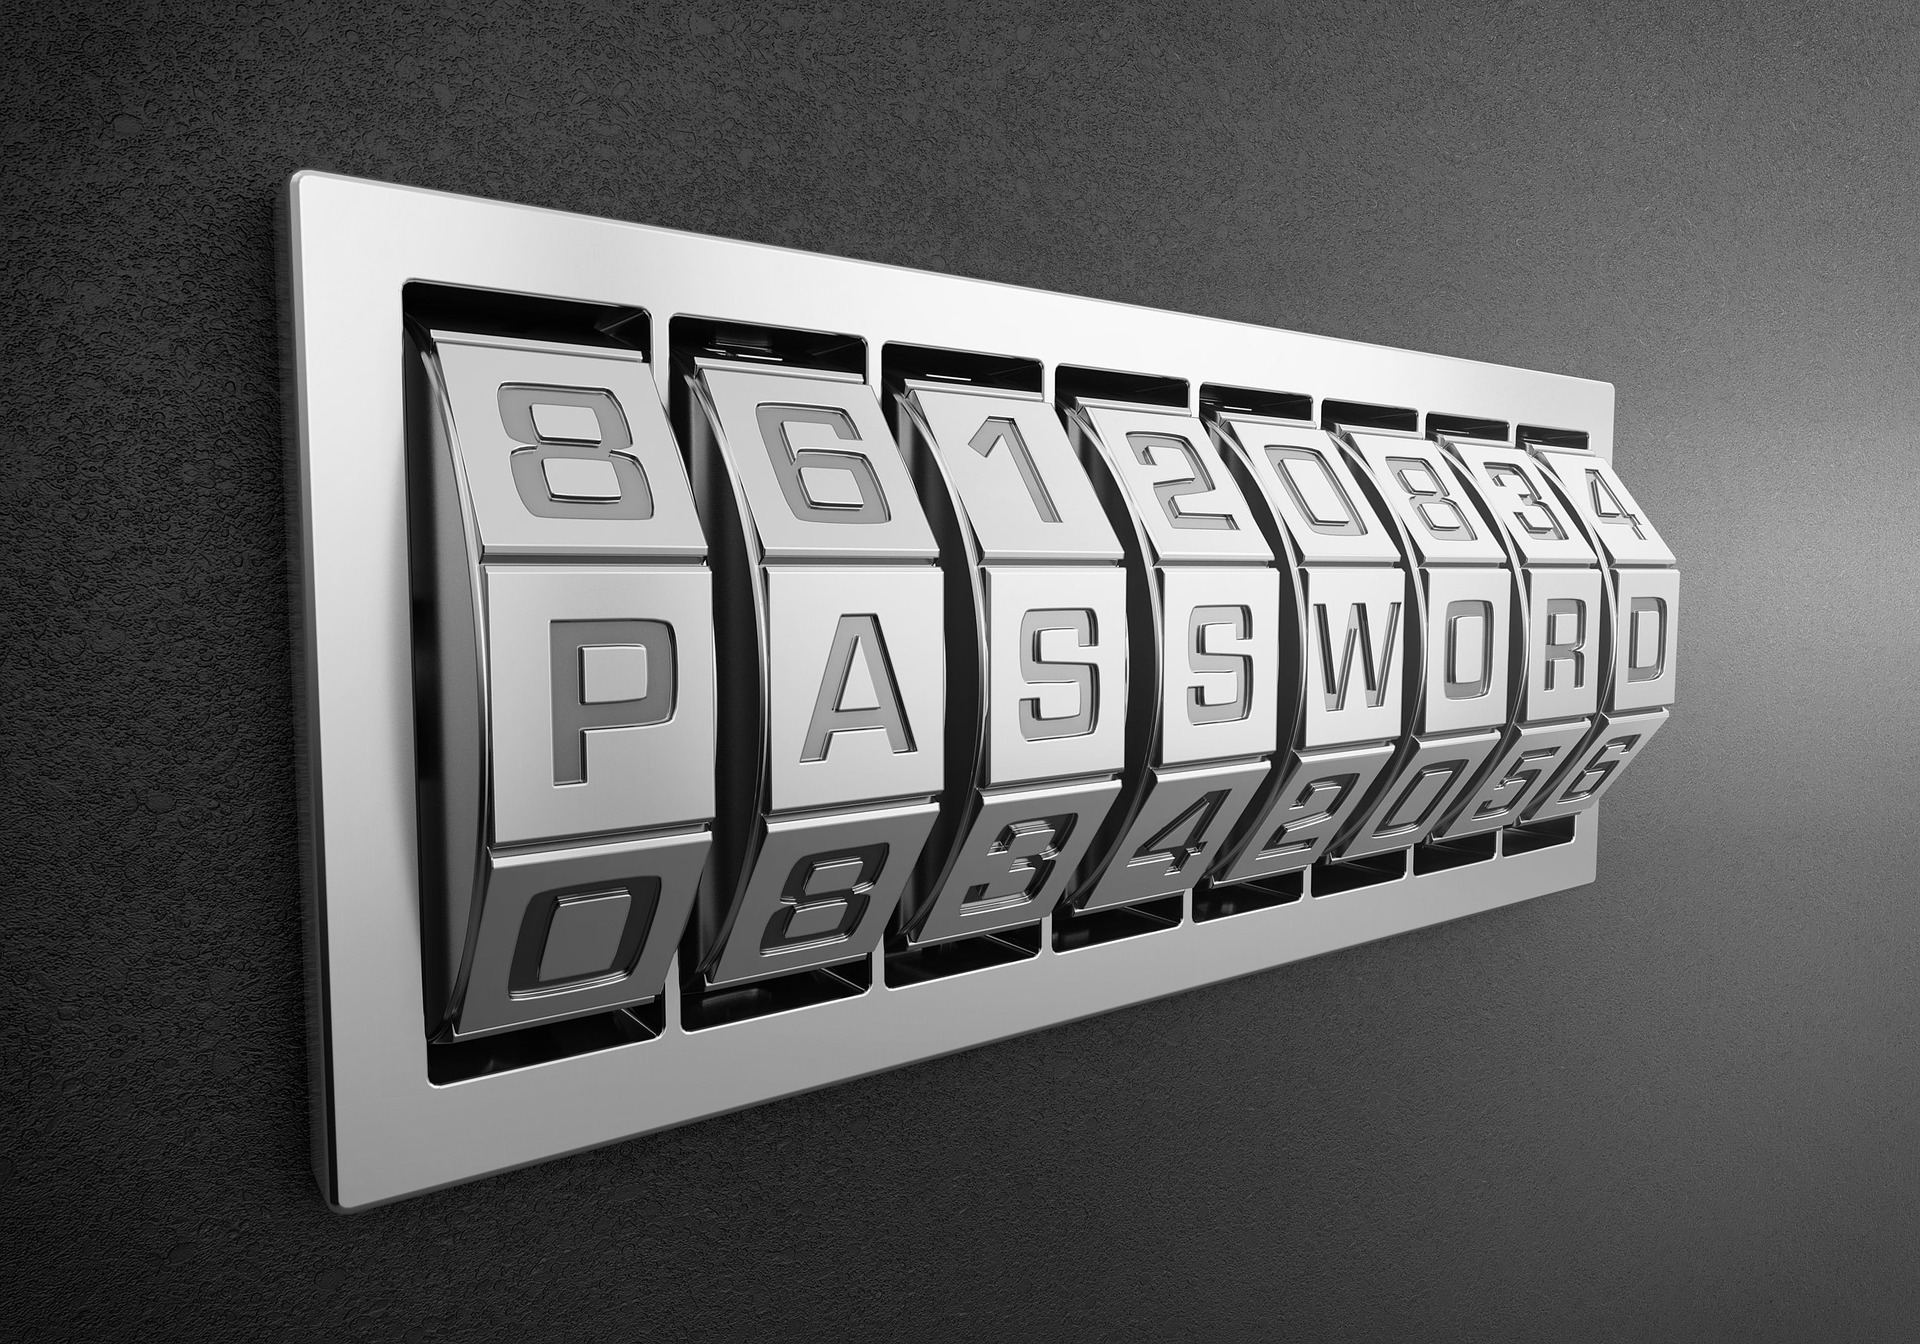 25 Most Common Passwords of 2017 | Candid.technology